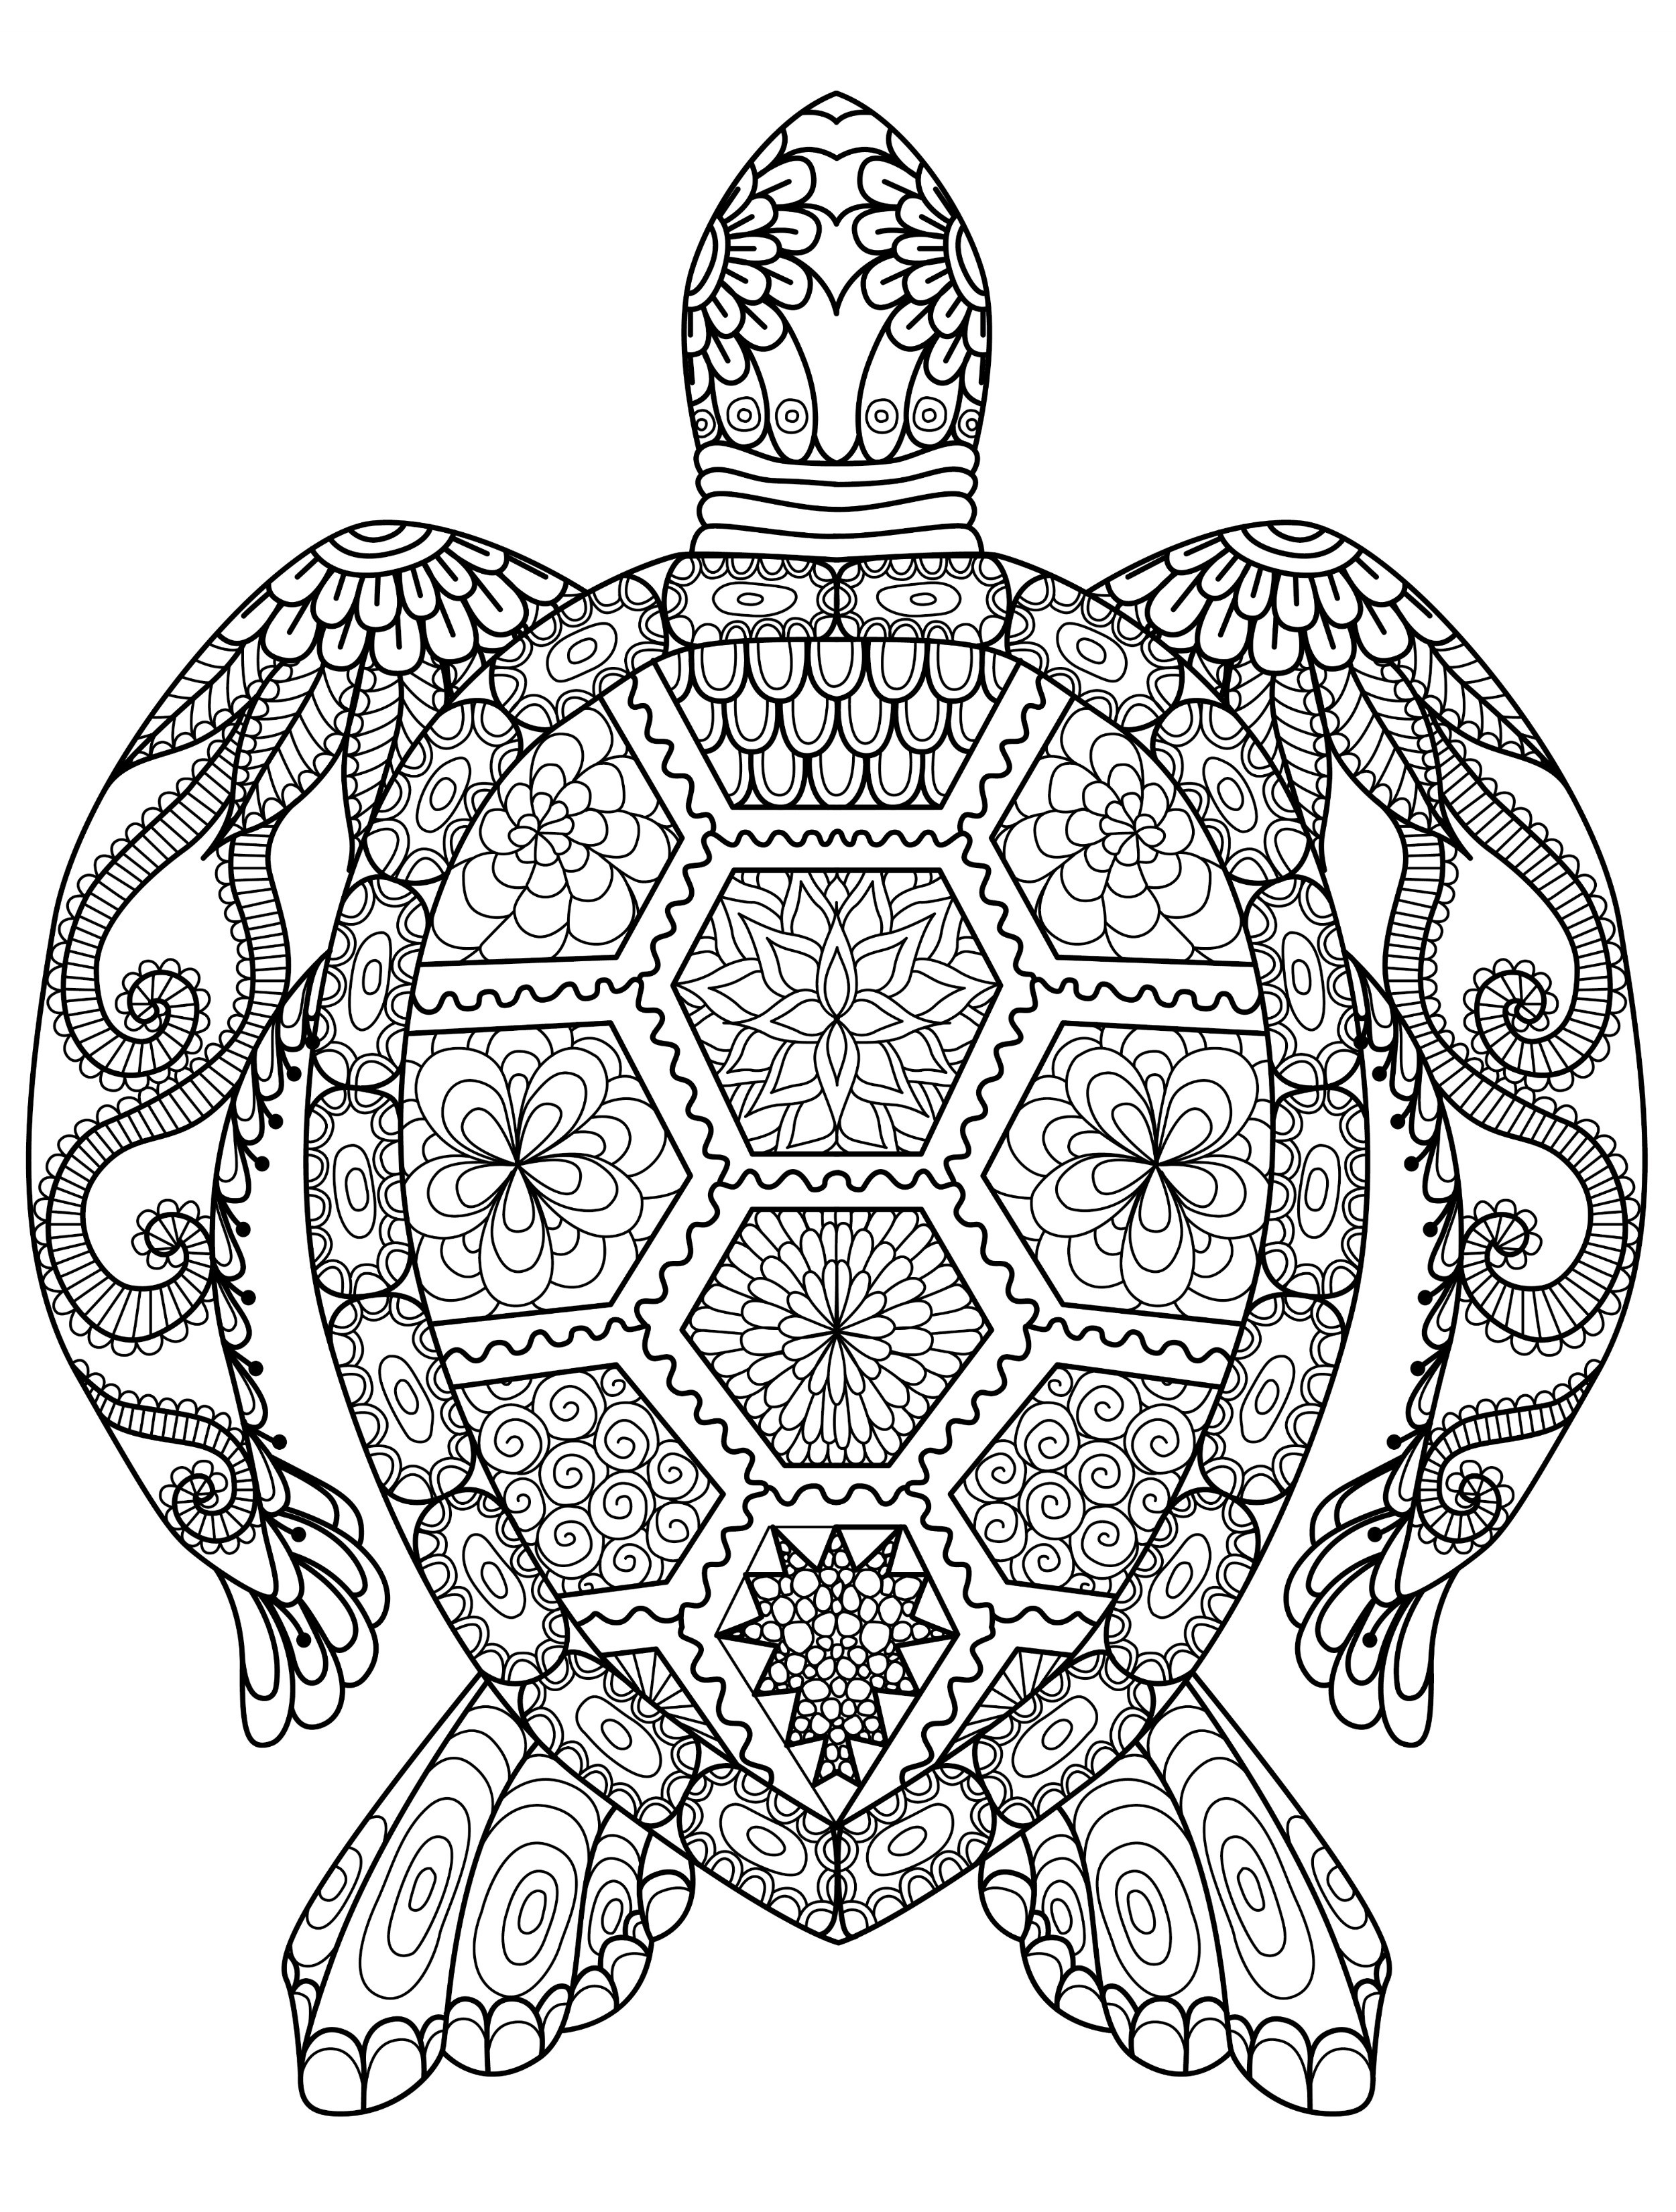 coloring pictures of animals 10 cute animals coloring pages gtgt disney coloring pages coloring of pictures animals